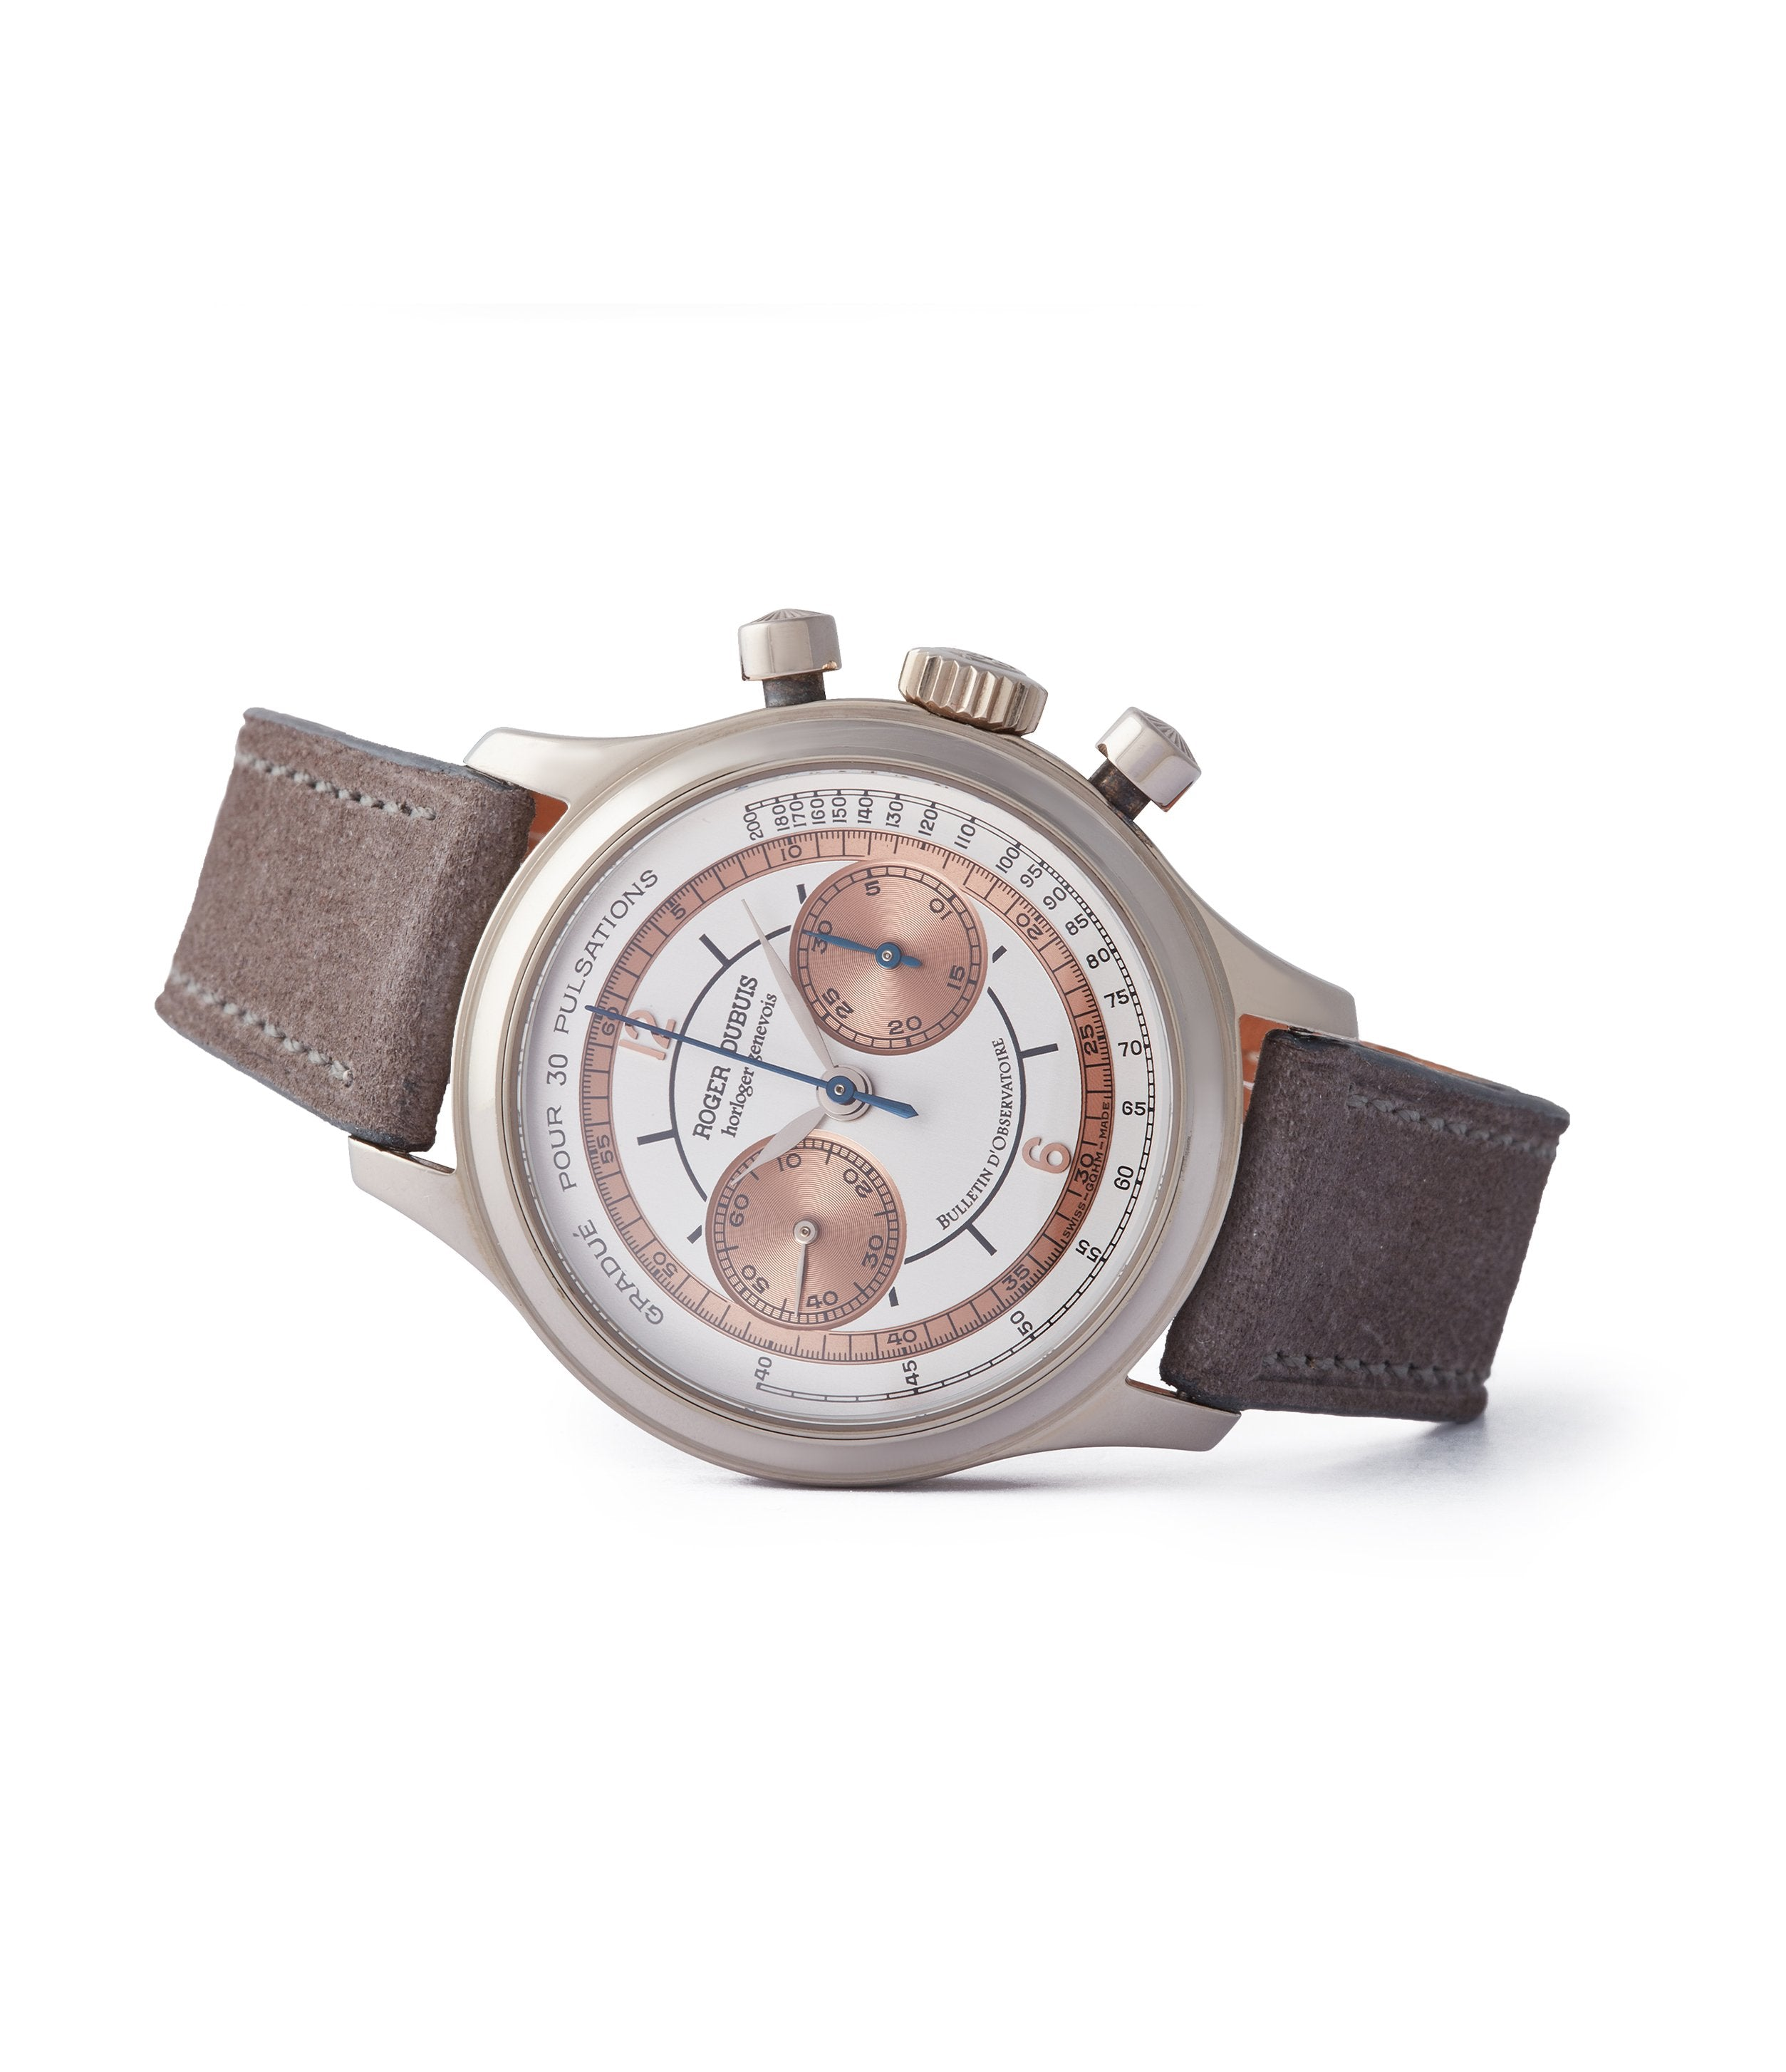 side-shot preowned rare Roger Dubuis Hommage Pulsation scale chronograph H37 560 copper dial dress watch for sale online A Collected Man London UK specialist rare watches